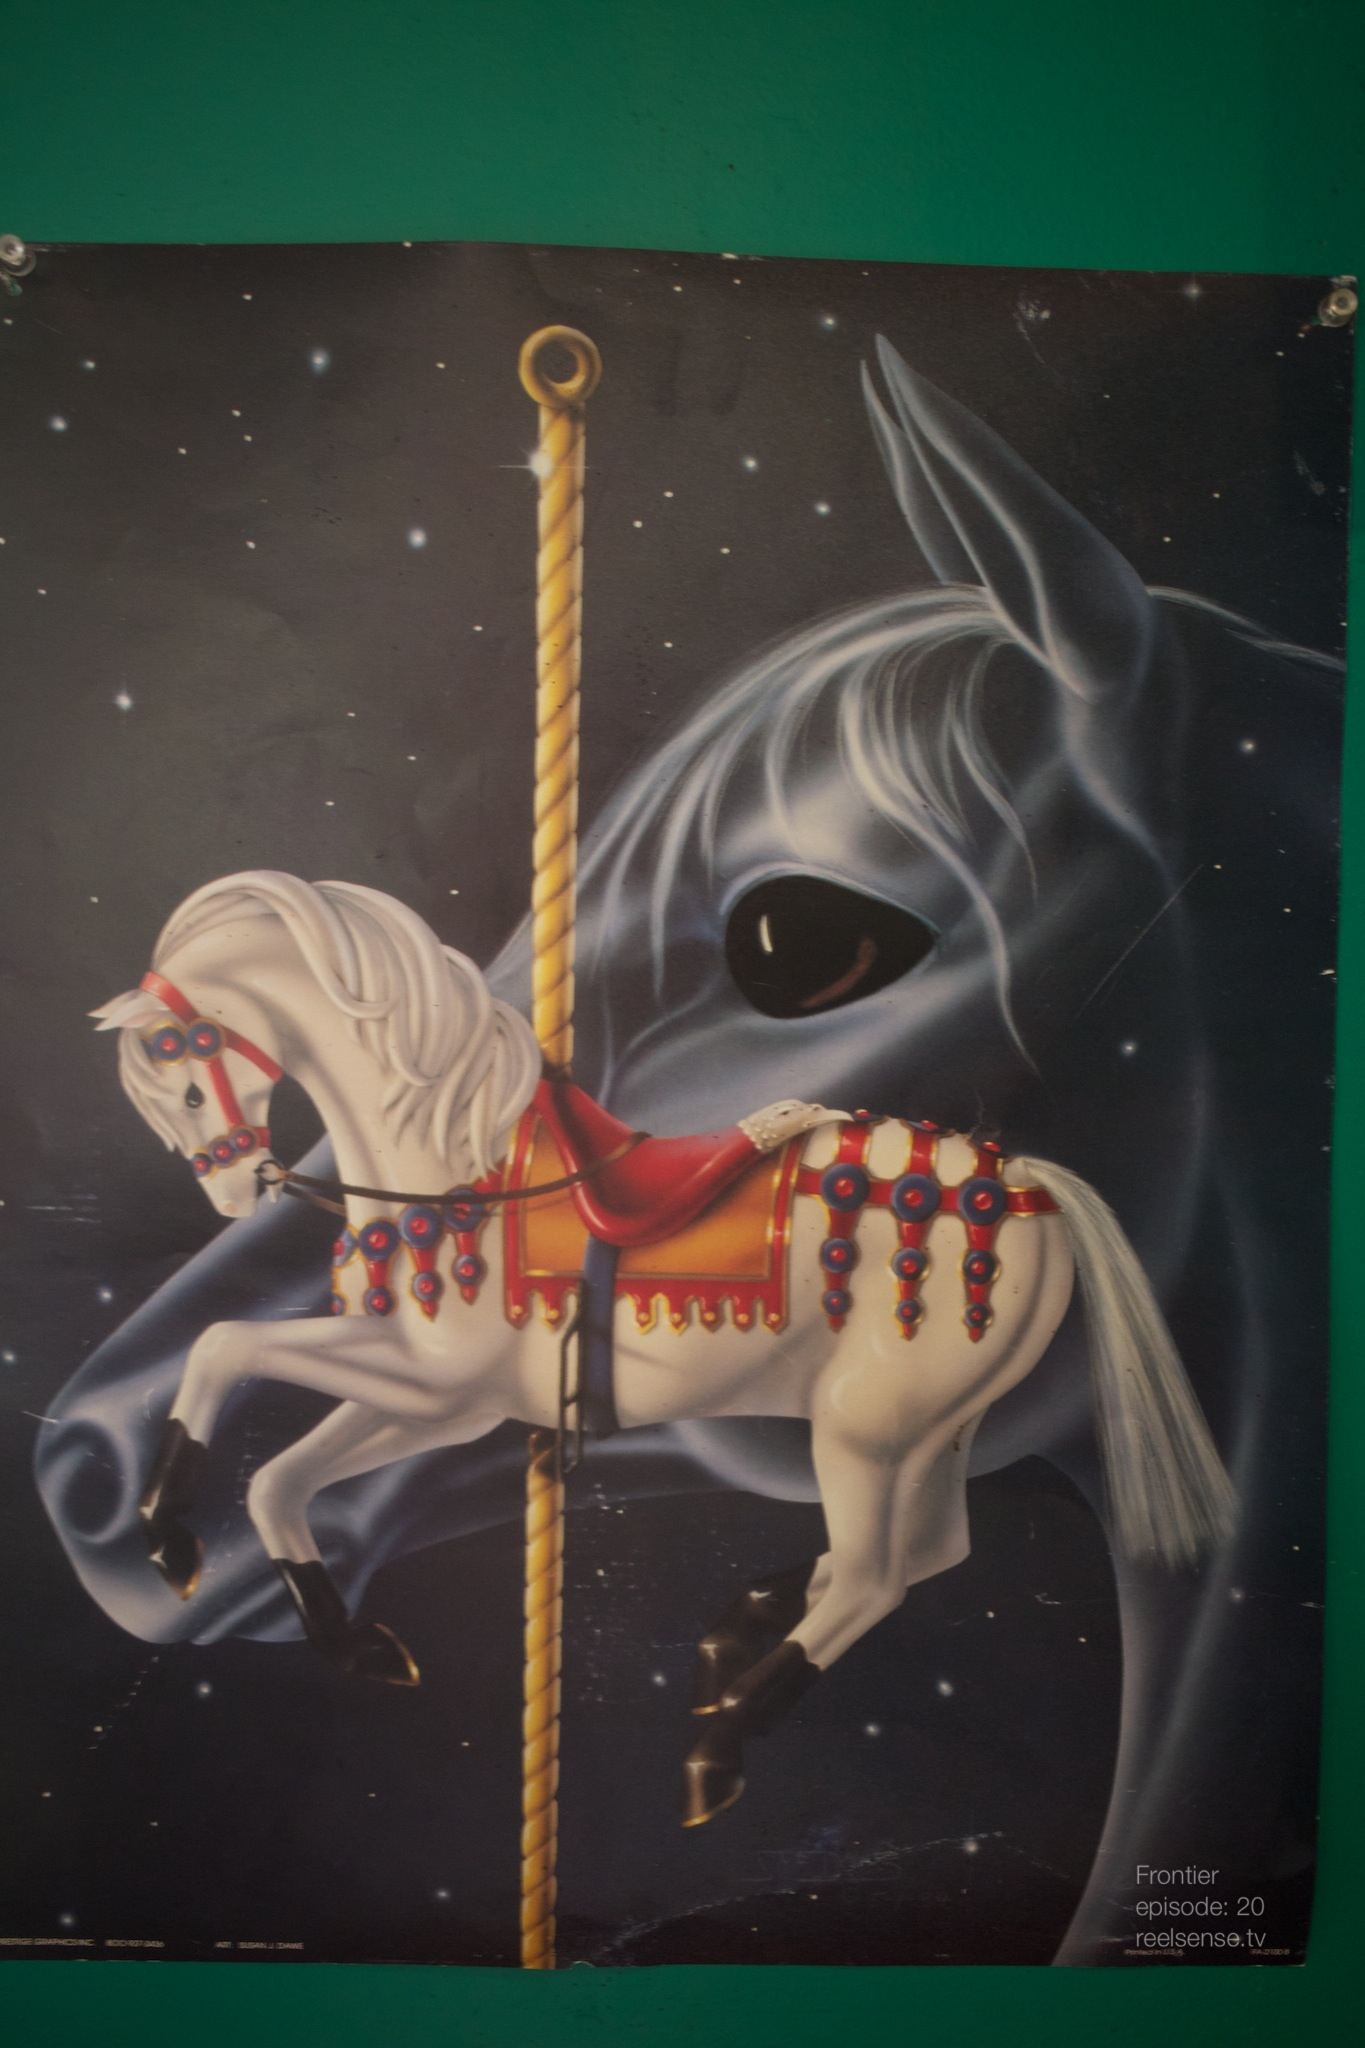 Joshua Tree - Creepy Unicorn painting in dinner